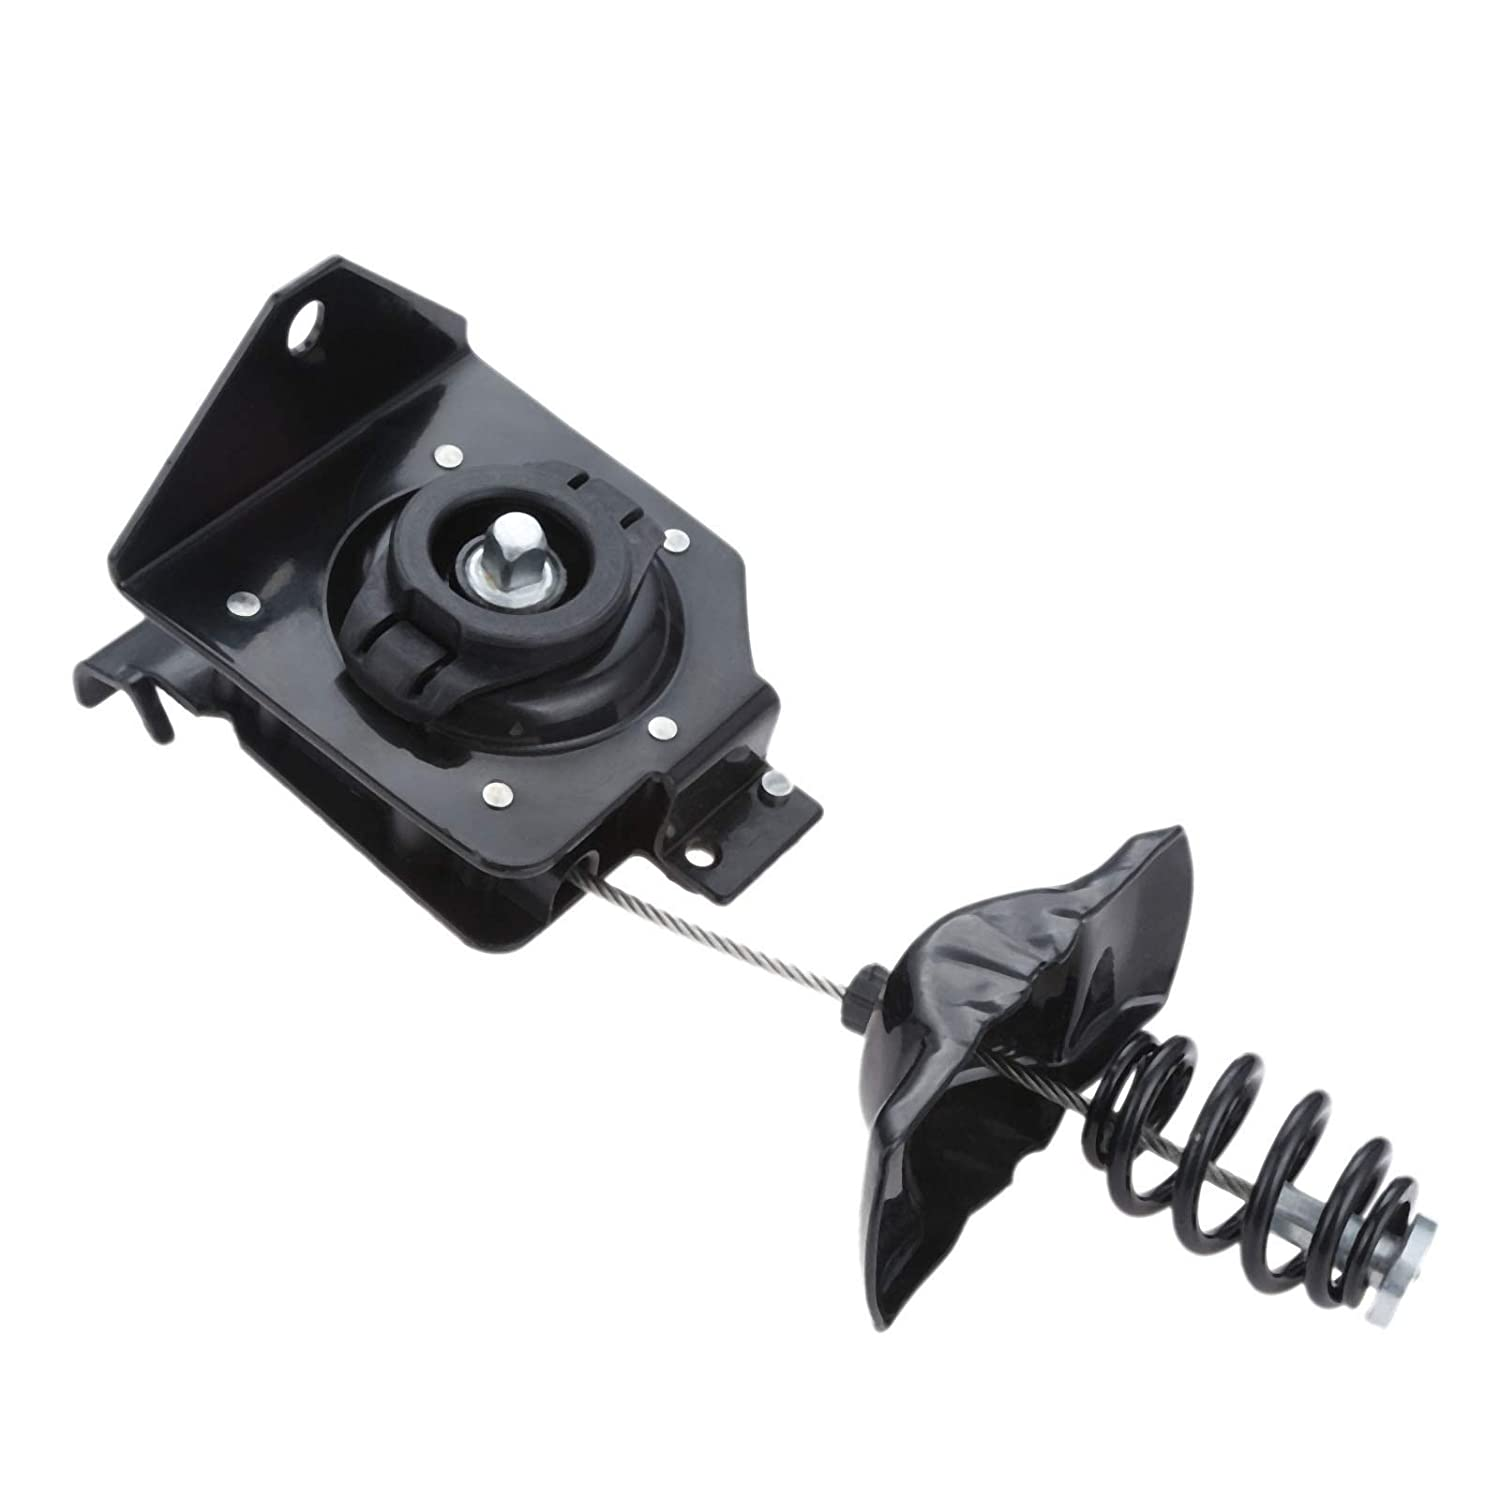 for 1999-2004 Silverado 2500 Tire Winch Carrier Holder Fit for 1999-2017 Chevy Silverado 1500 /& GMC Sierra 1500 for 2000 Tahoe /& Suburban Replace# 20870067 15703311 924-510 Spare Tire Hoist